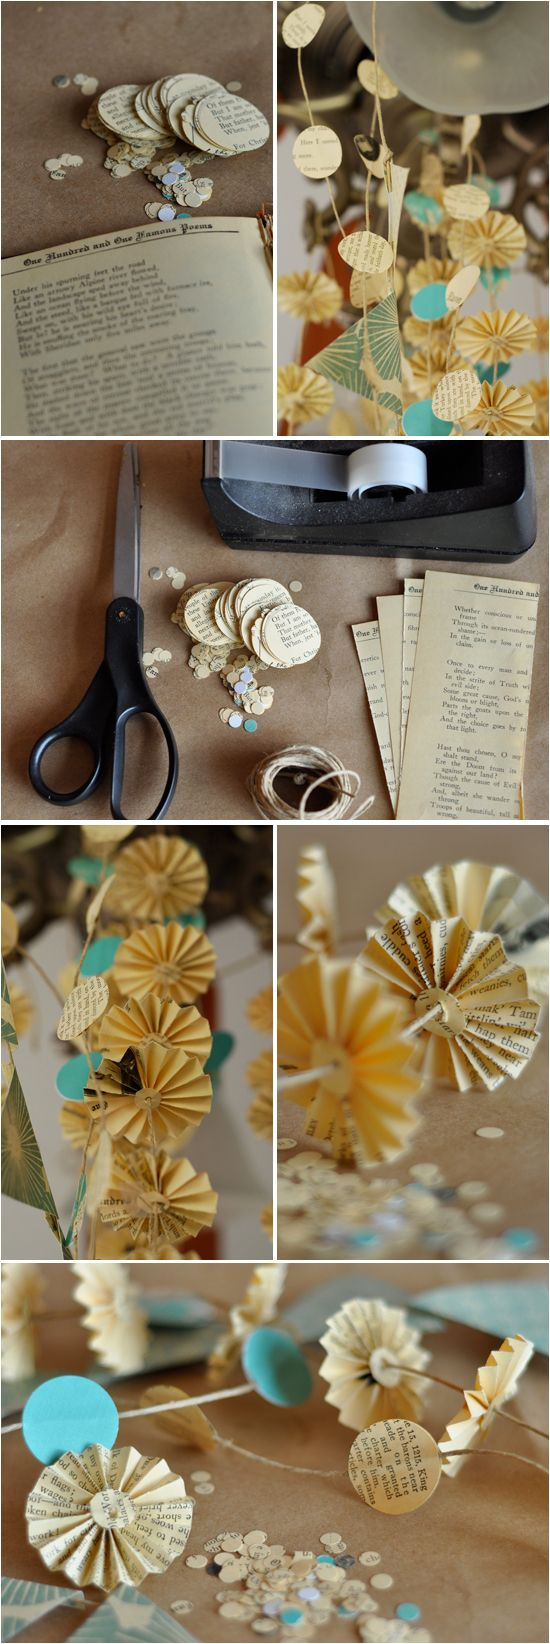 DIY - Paper Garland with Pinwheels and Circles using old book or music sheet paper. Full Tutorial.